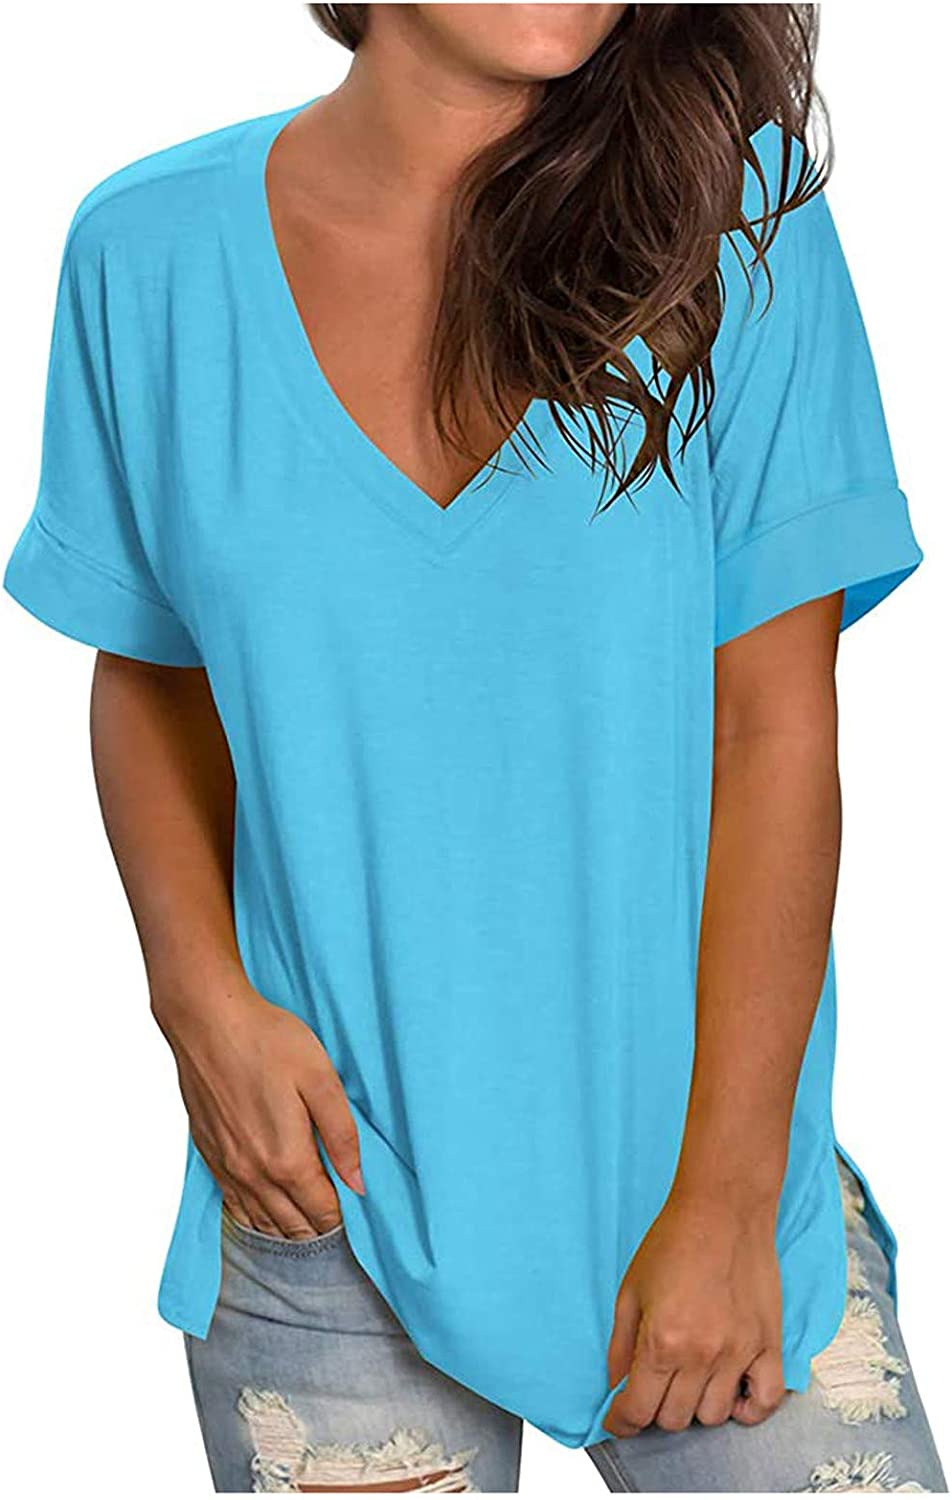 V Neck Tees for Womens Solid Color Tops Summer Casual T Shirt Si